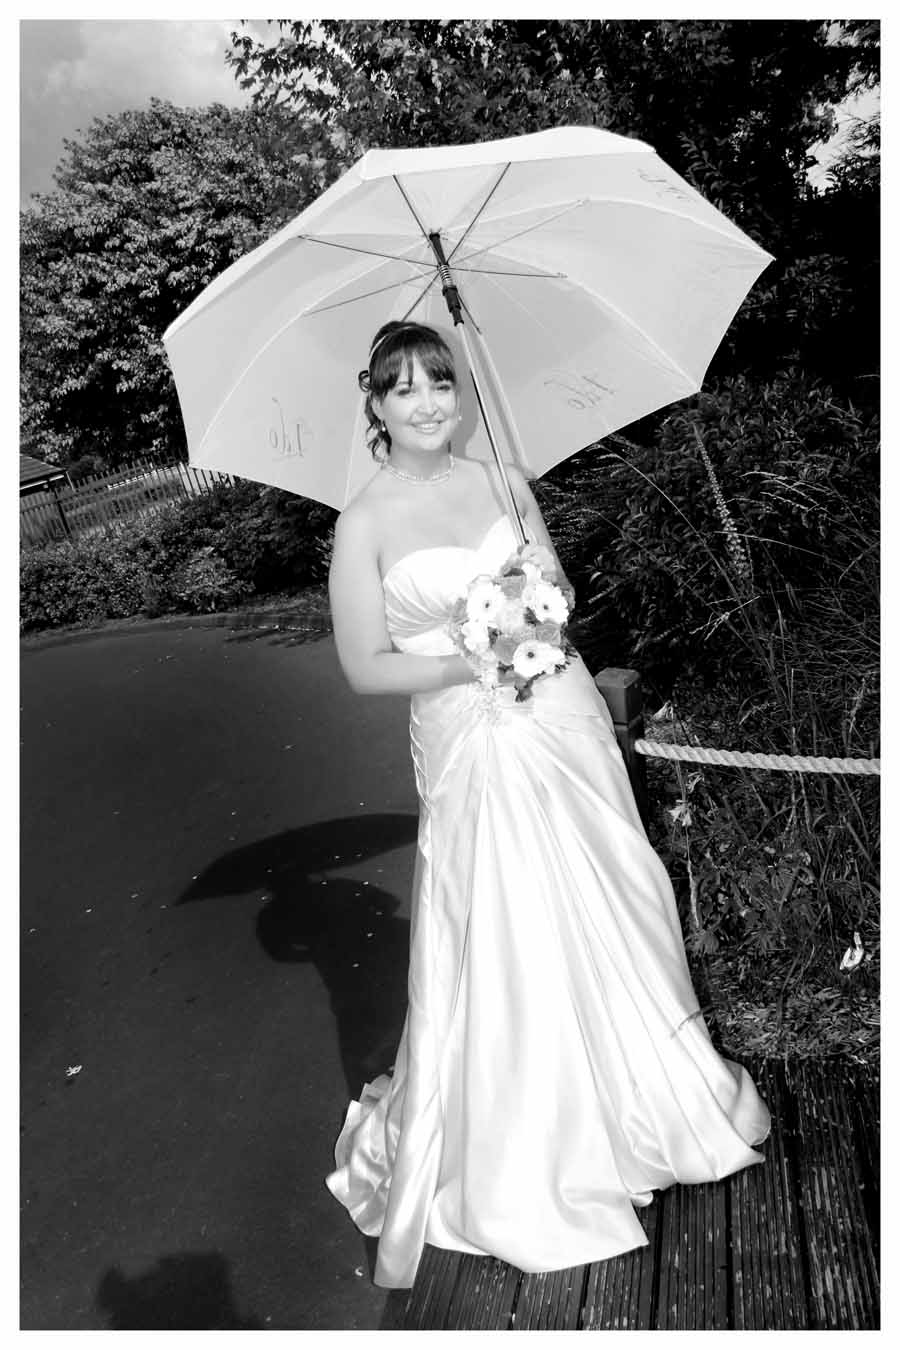 BRIDE Photos by Simeon Thaw copyright 2014 (59).jpg